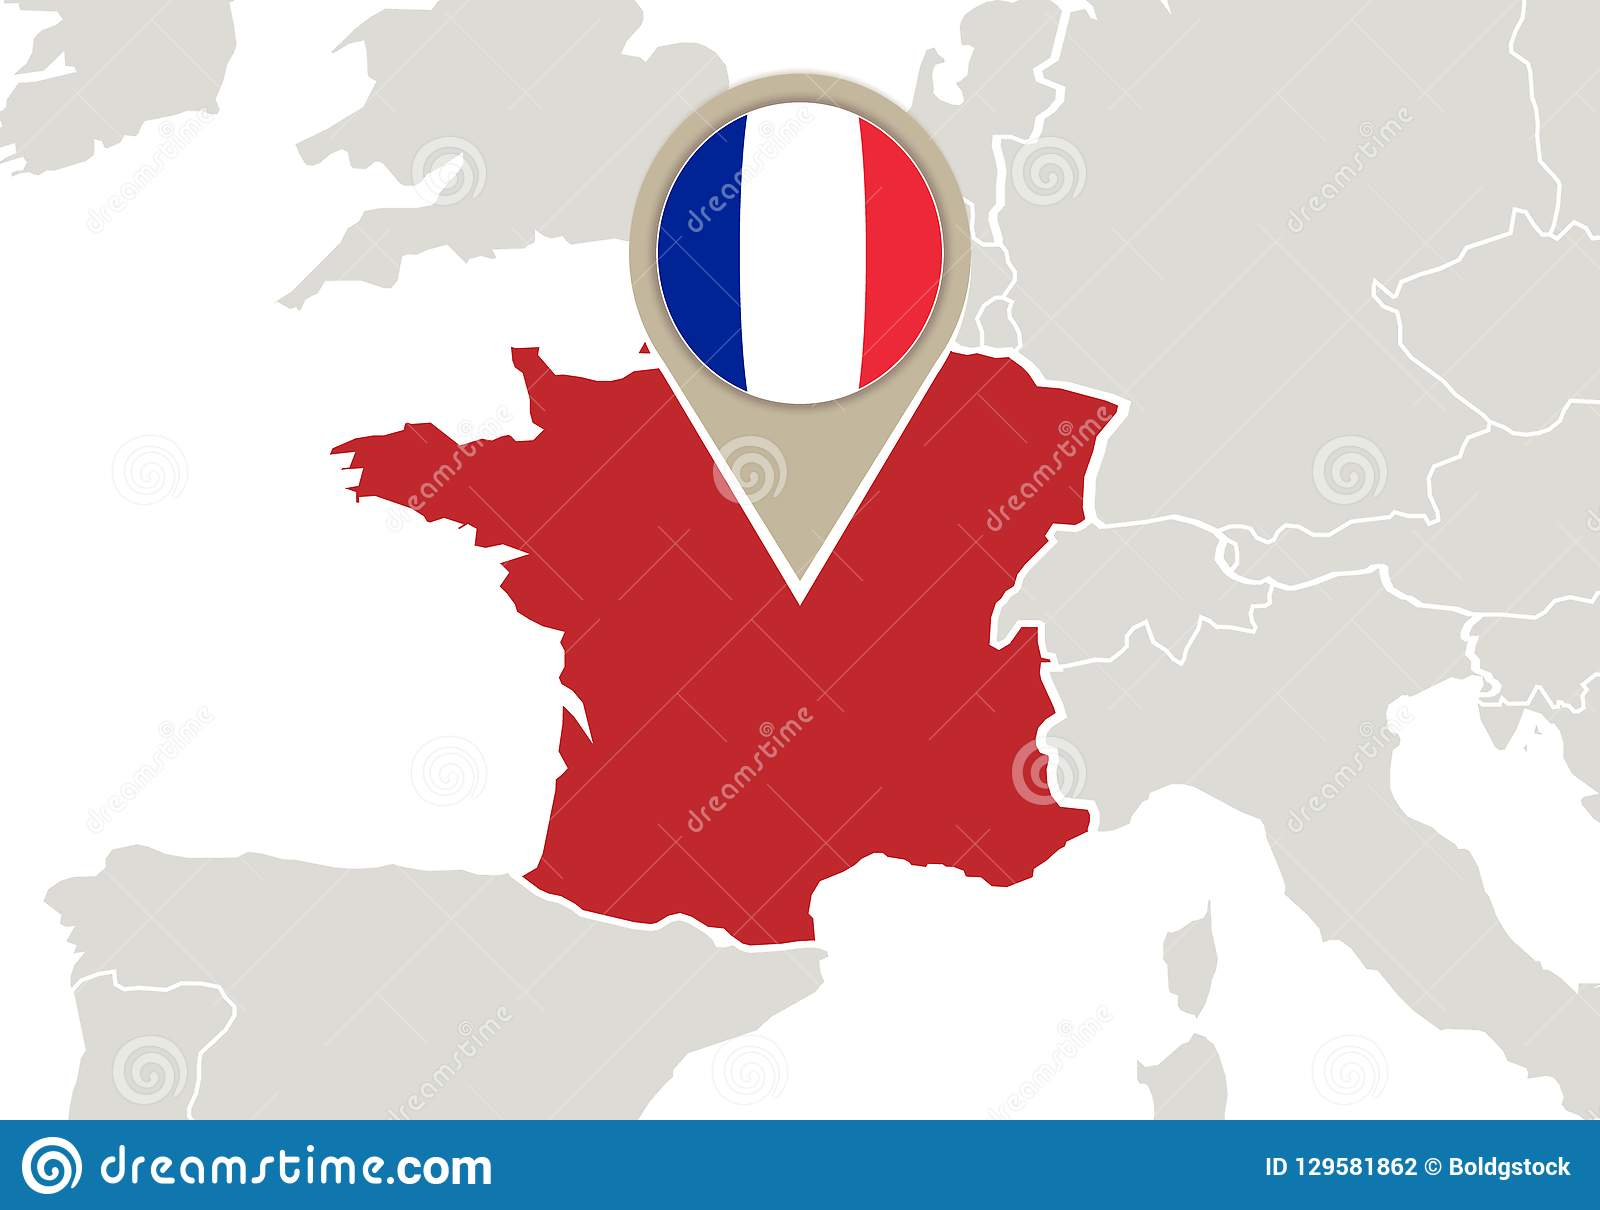 Map Of Europe With France Highlighted.France On Europe Map Stock Vector Illustration Of France